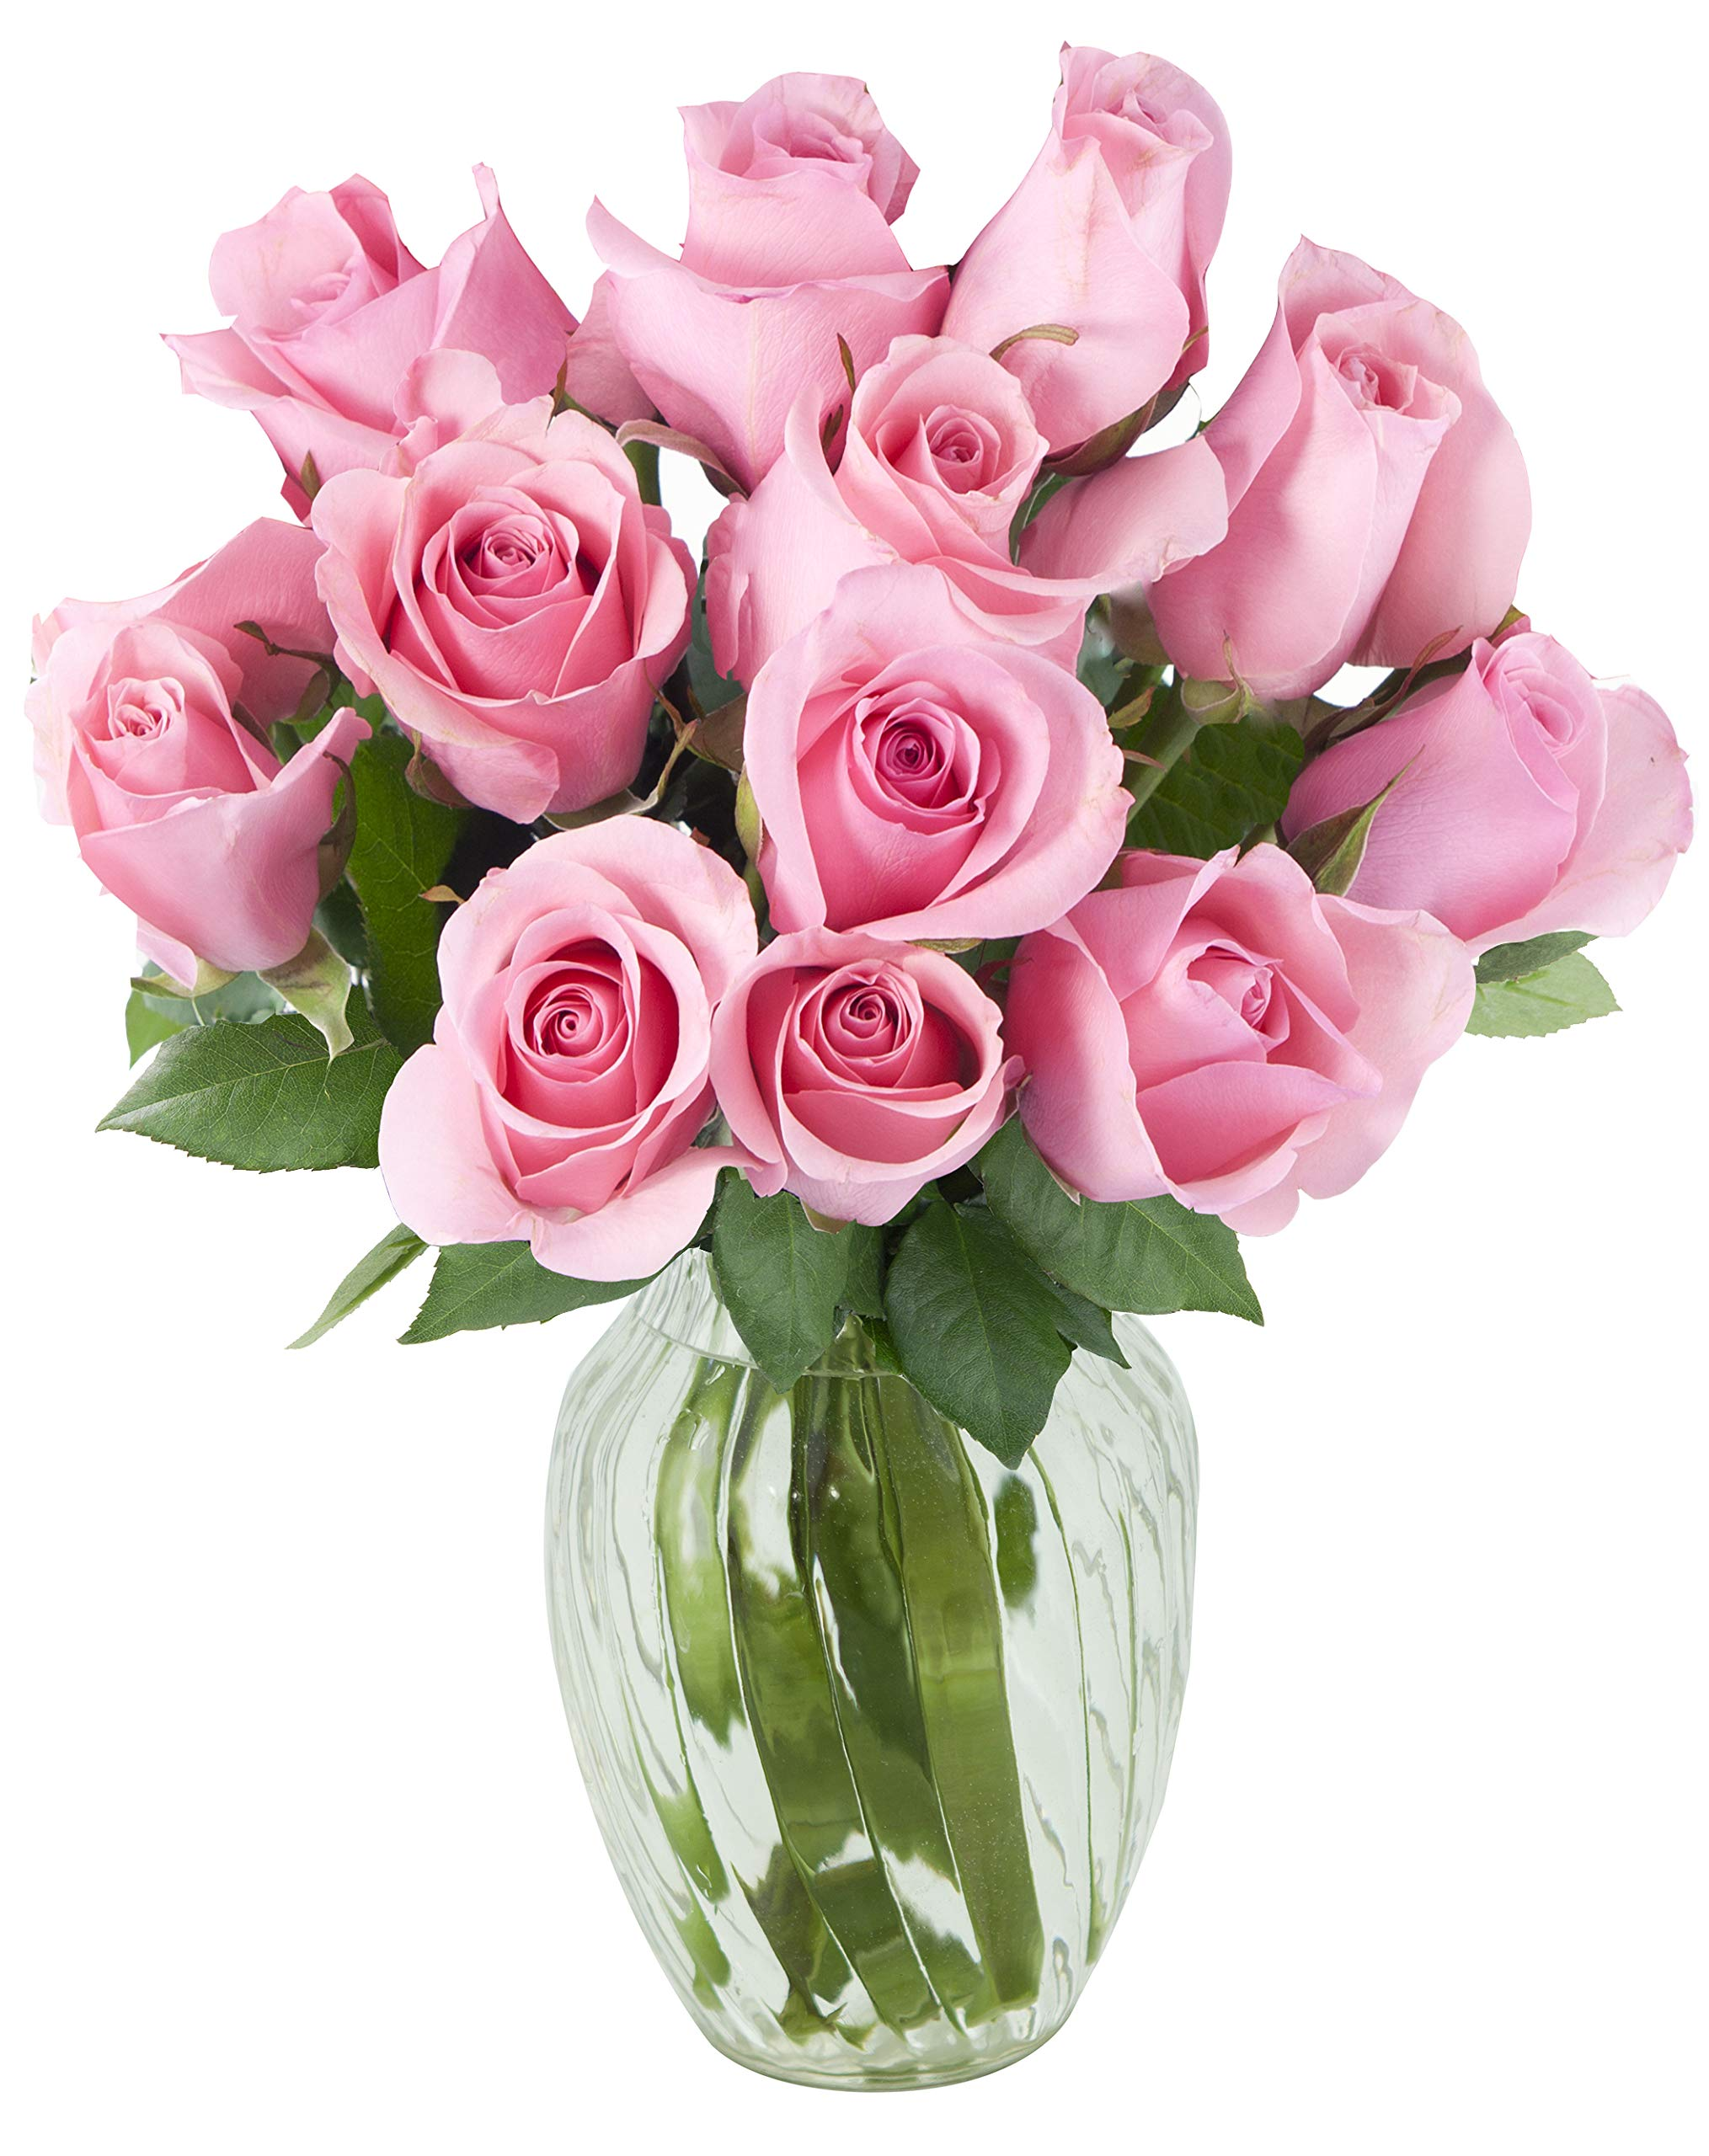 KaBloom Bouquet of 12 Fresh Pink Roses (Farm-Fresh, Long-Stem) with Vase